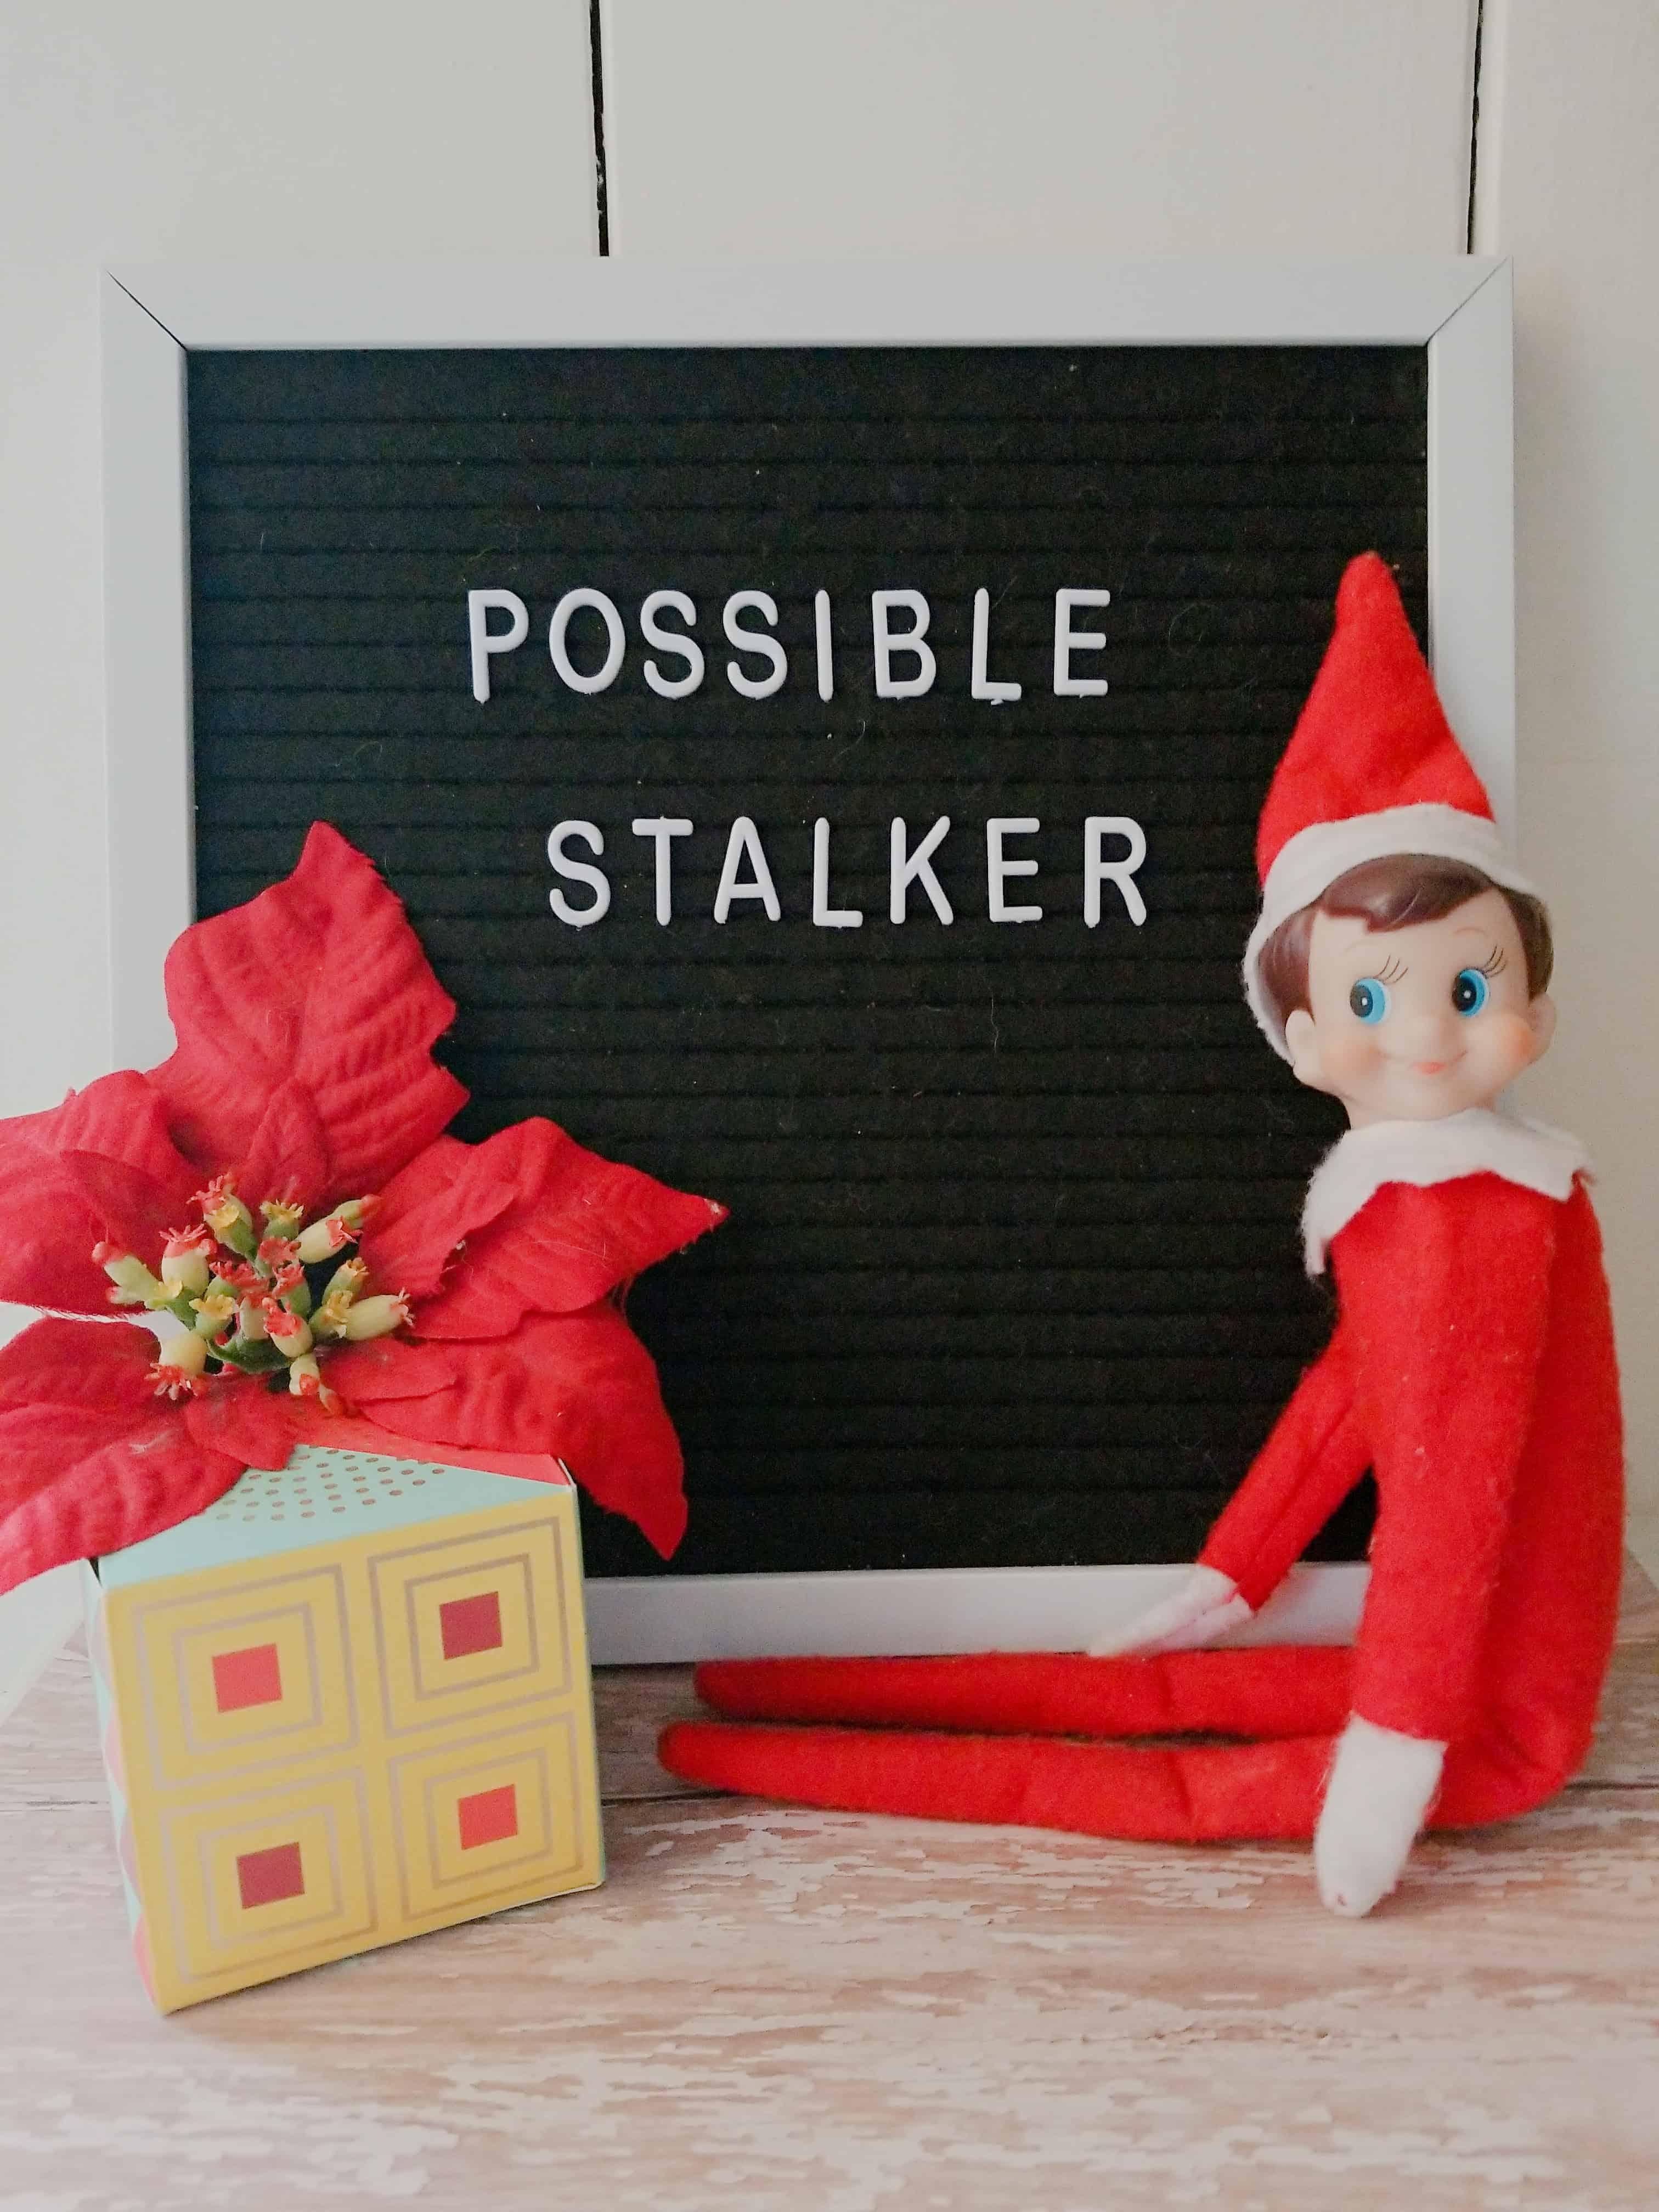 Here's another elf on the shelf message -- possible stalker!